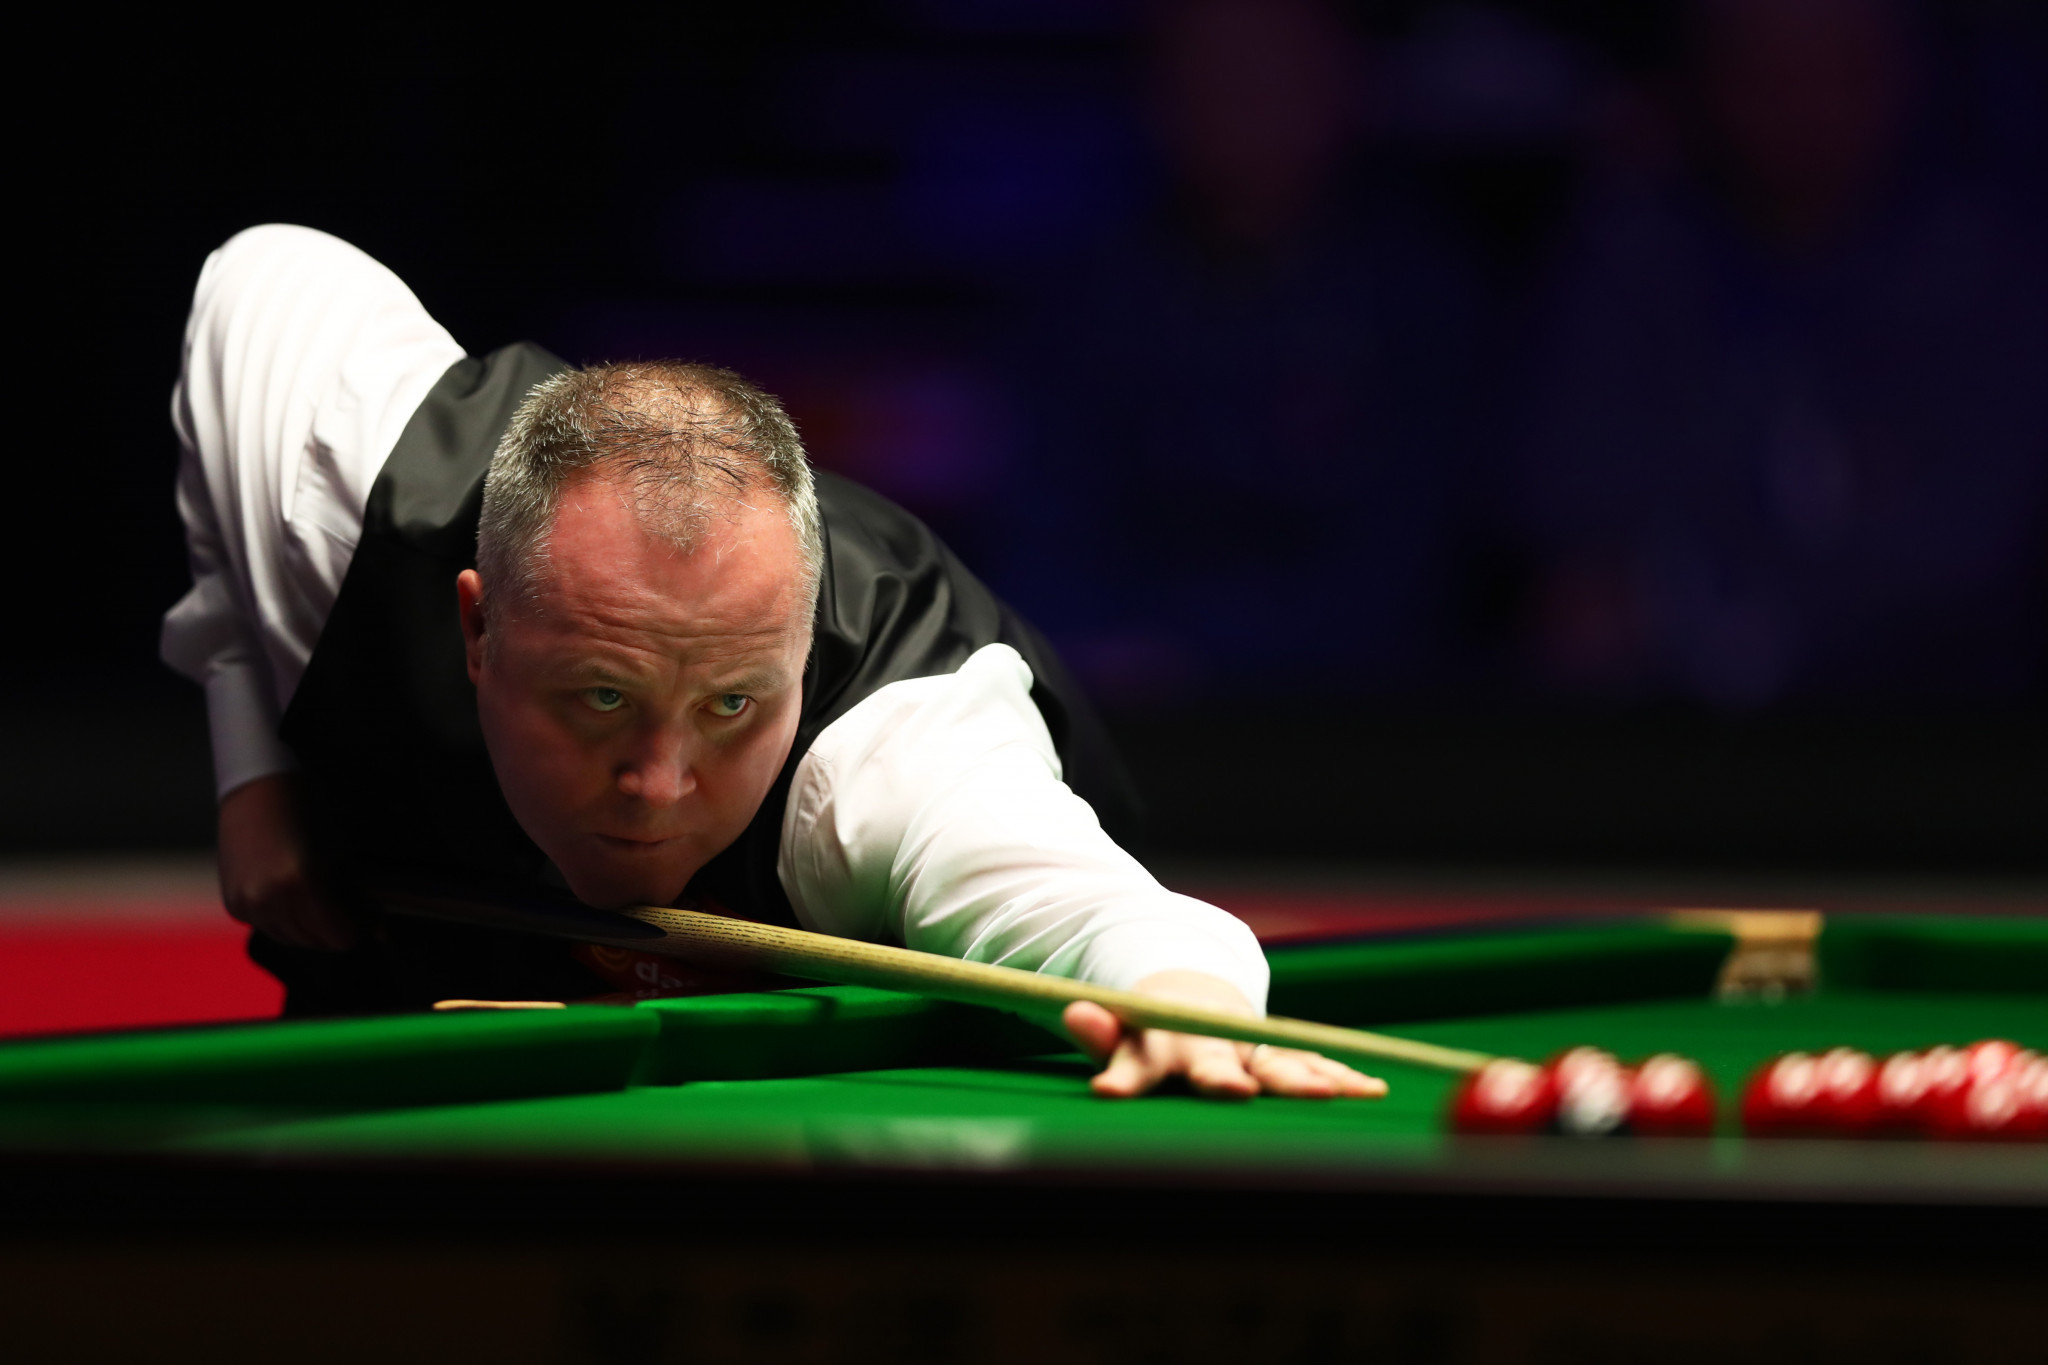 Higgins trailing Gilbert after first session of semi-final at World Snooker Championship